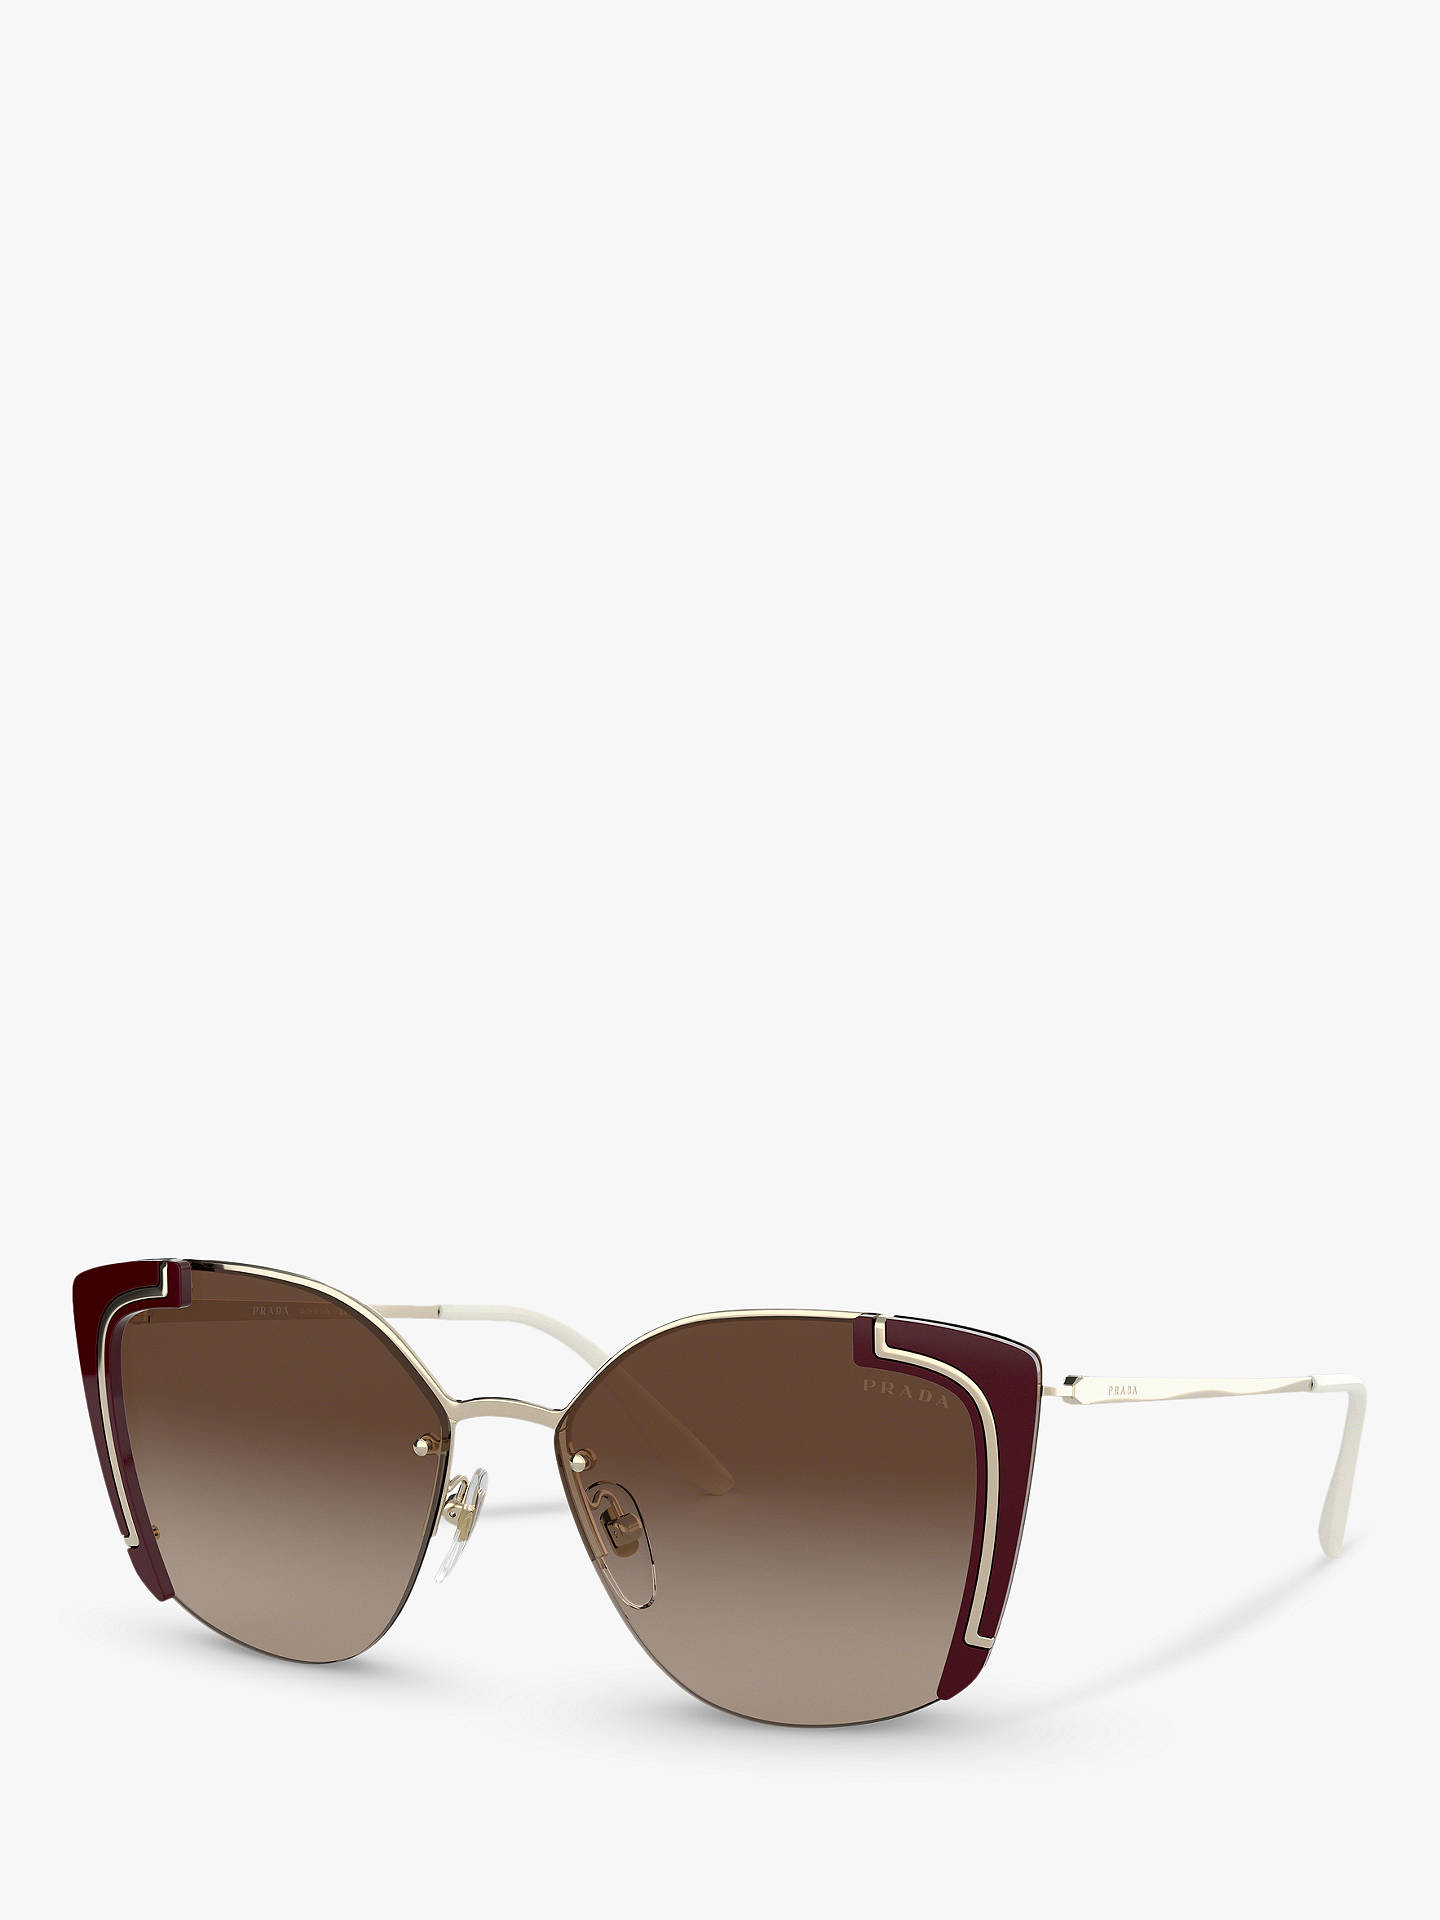 54be1fa24b2 BuyPrada PR 59VS Women s Square Sunglasses